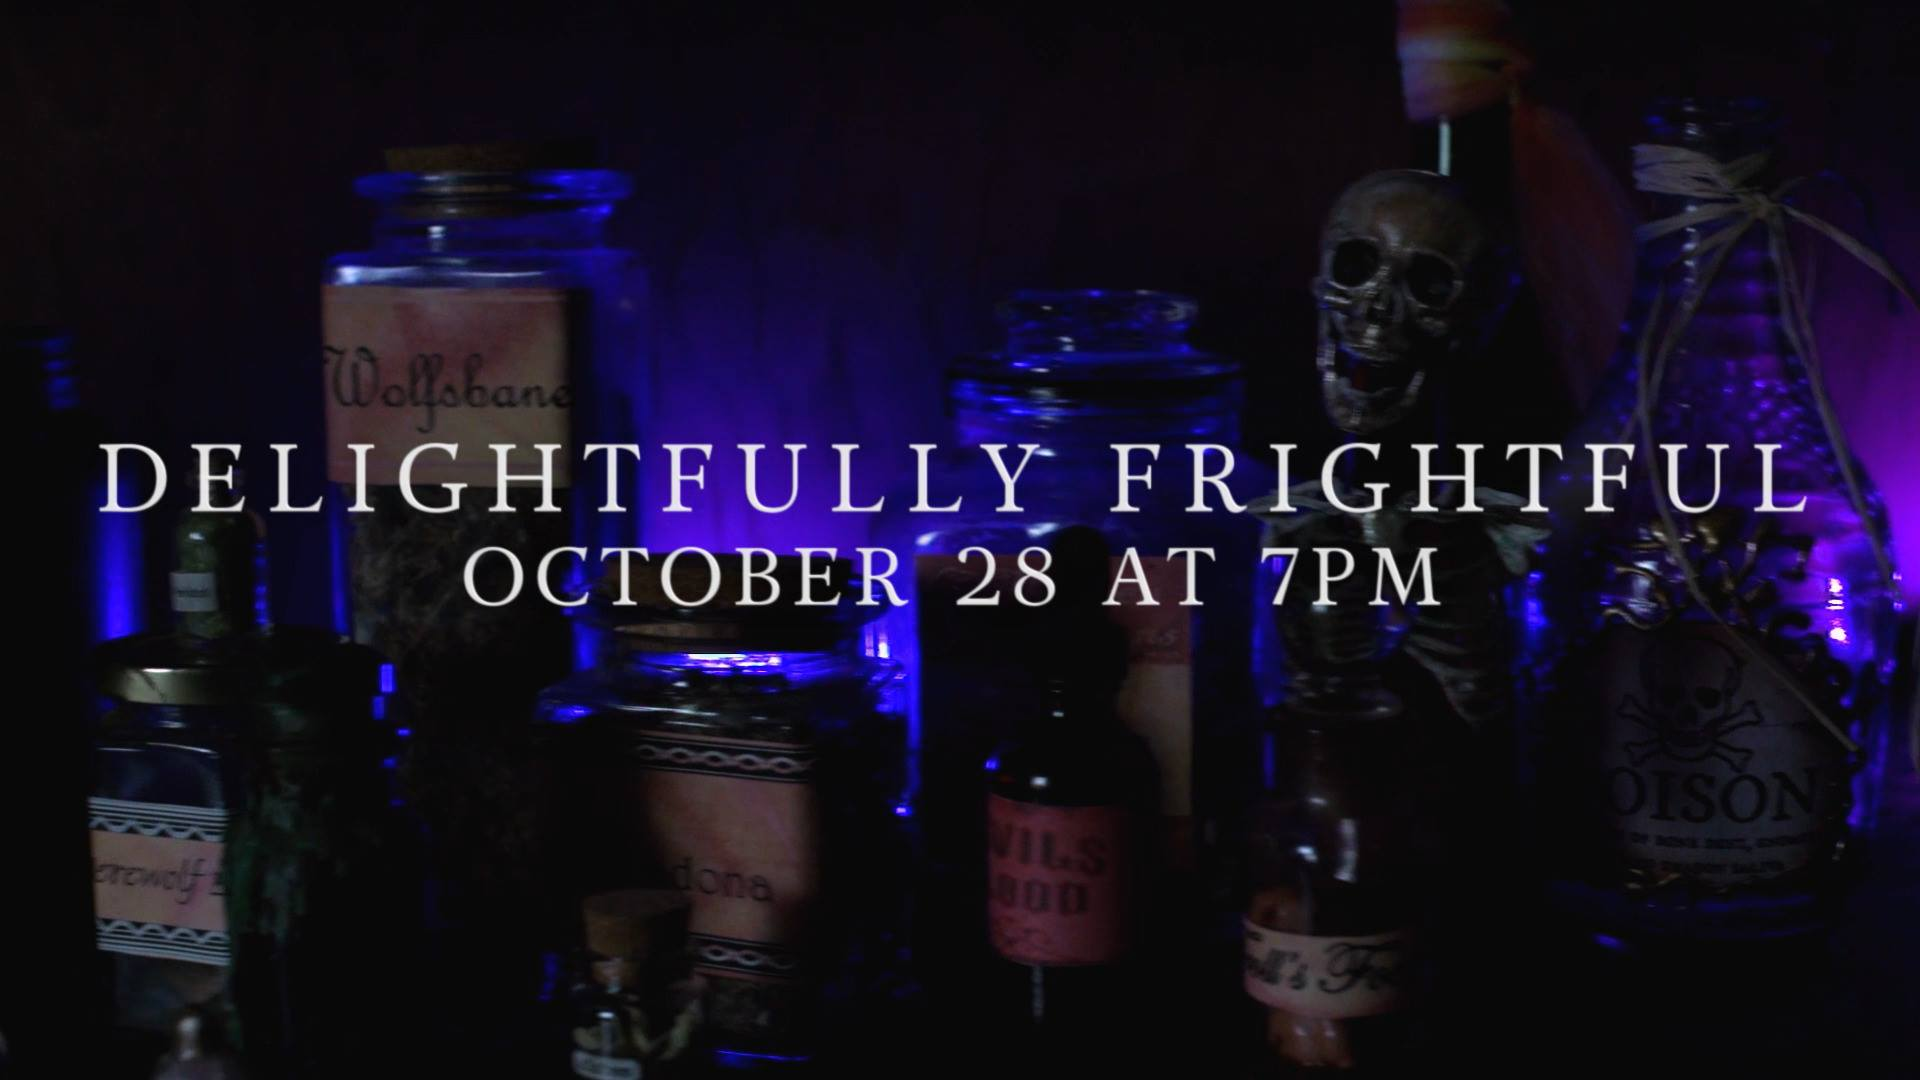 NAWS Frightfully Delightful- The Witch